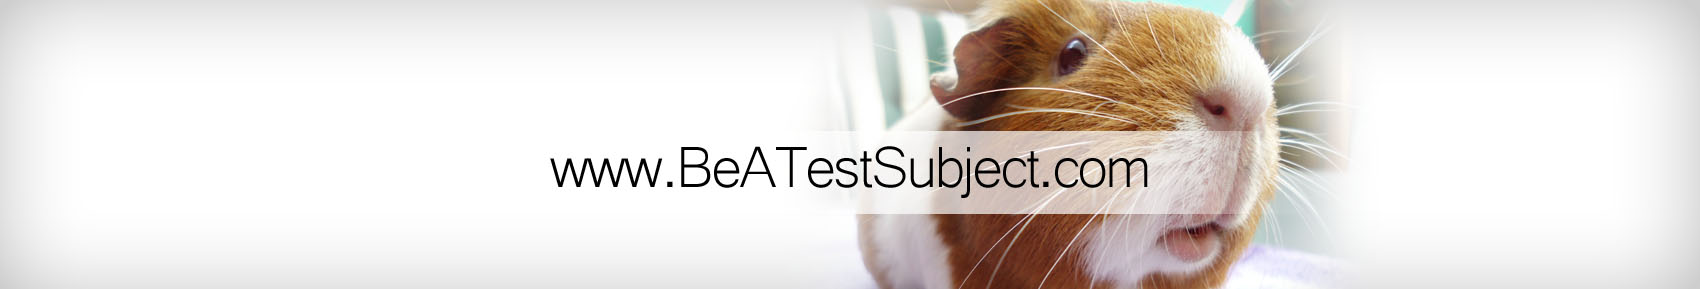 Be a test subject Global Clinicals